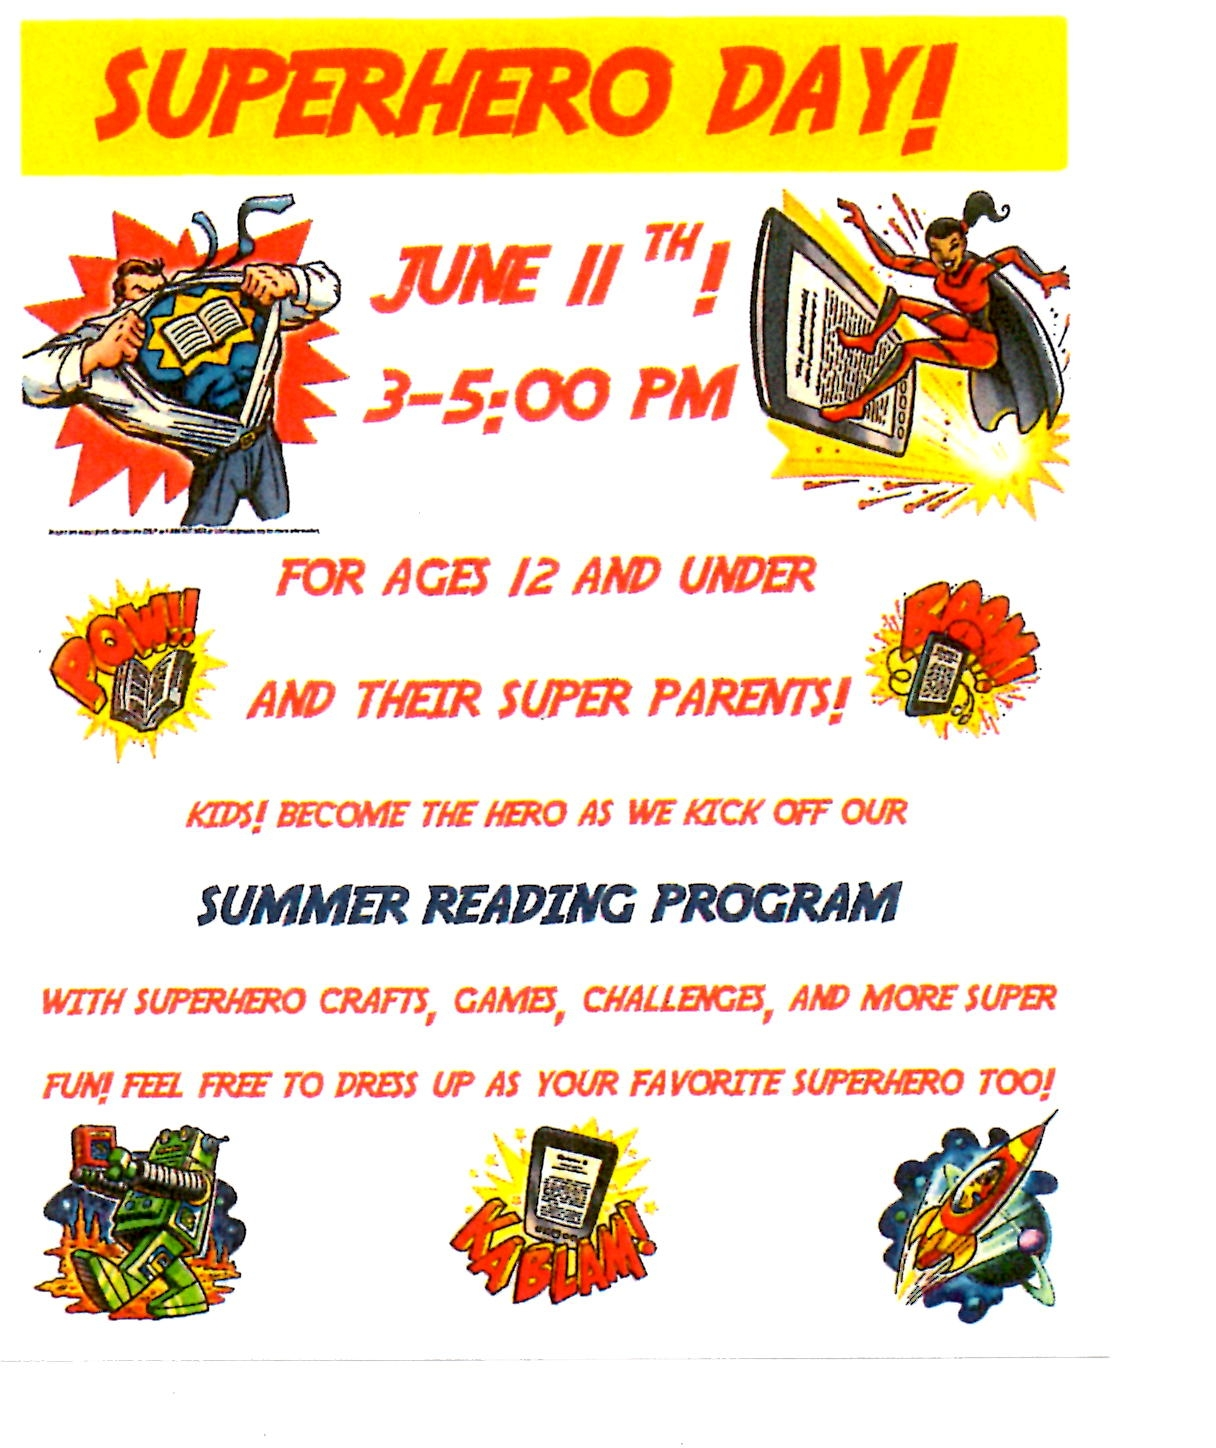 Super Hero Day June 11th